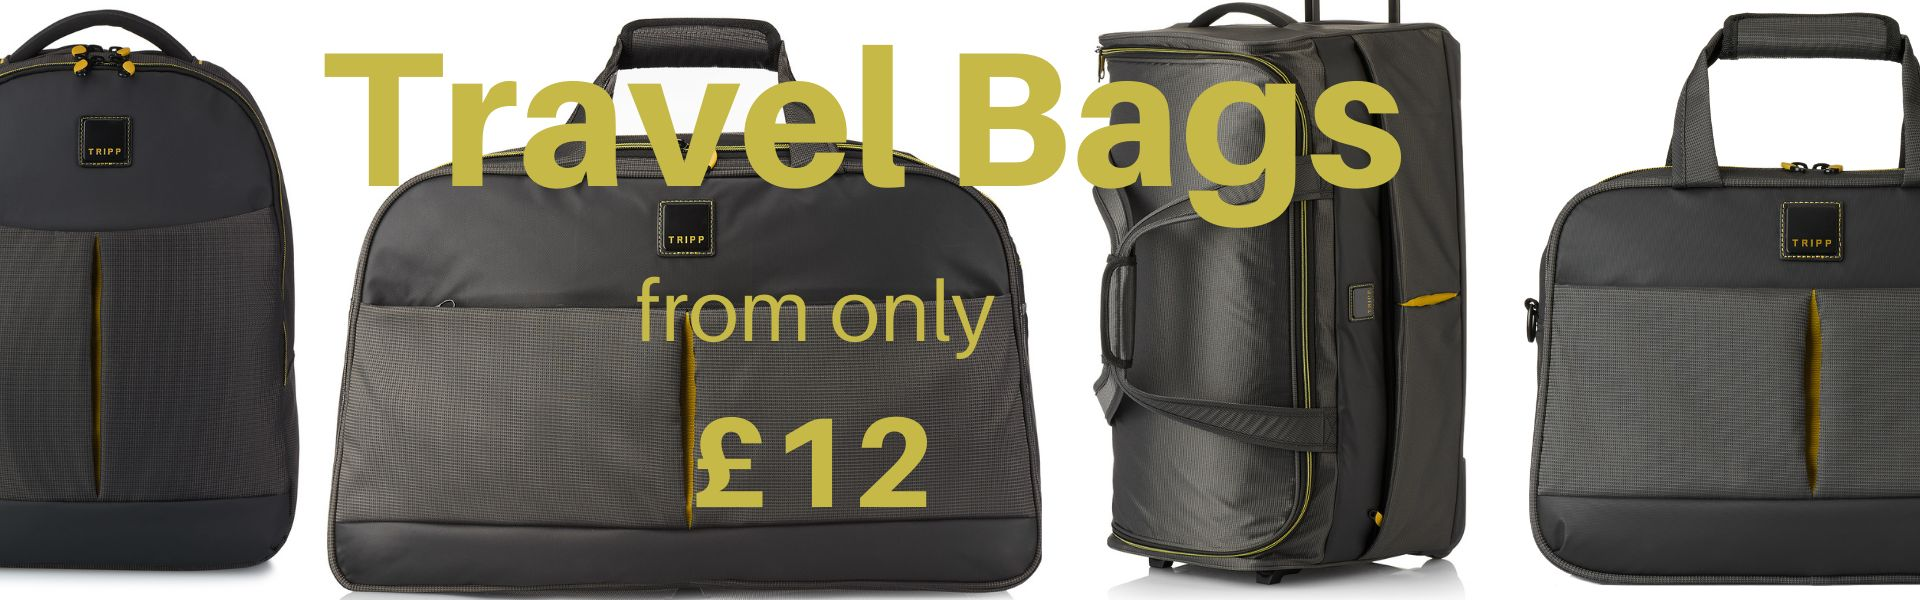 Travel bags from £12